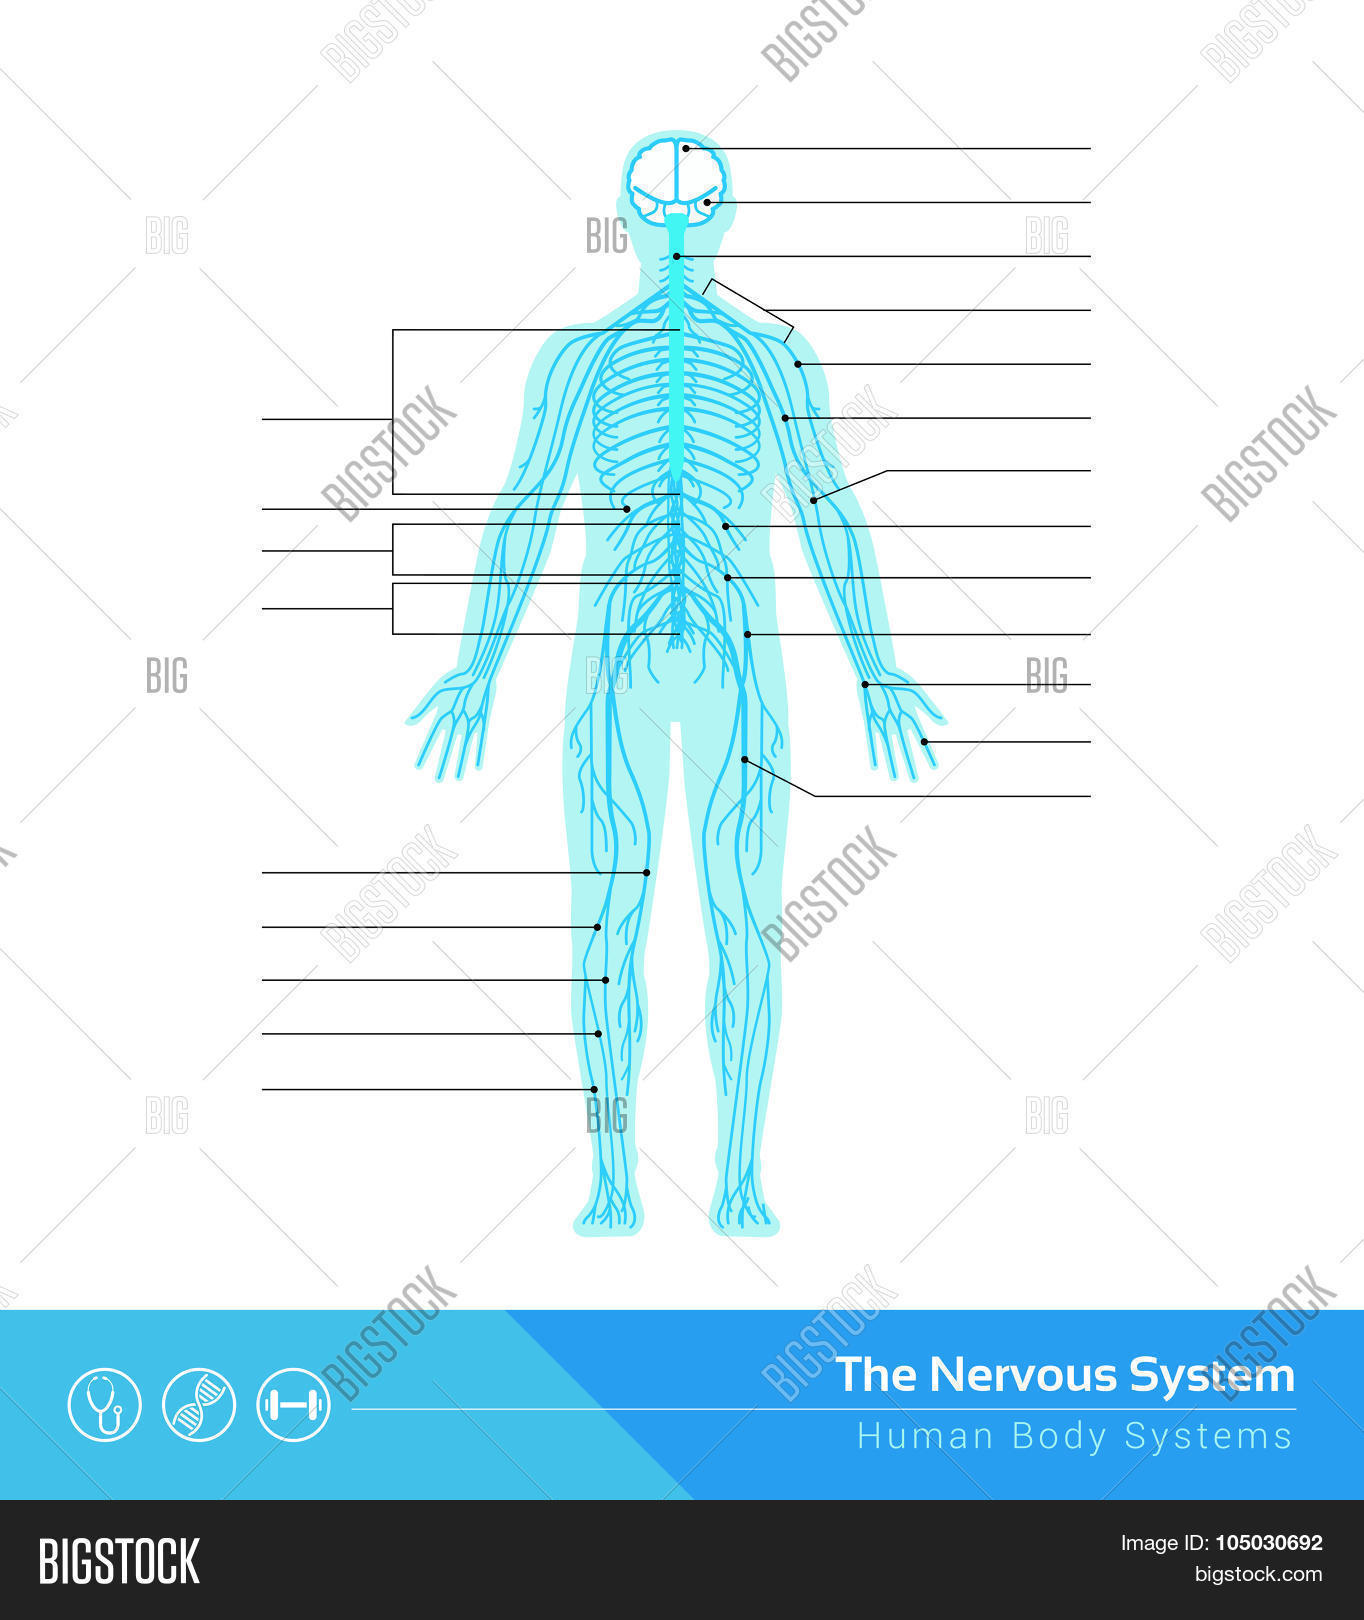 anatomical,anatomy,autonomic,biology,body,brain,central,cerebrospinal,cns,connections,copy,cord,diagram,education,functions,health,healthcare,human,label,labeled,medicine,name,nerves,nervous,network,neurological,neurology,neurons,neuroscience,organism,parts,peripheral,science,space,spinal,structure,sympathetic,synapses,system,text,transmission,vector